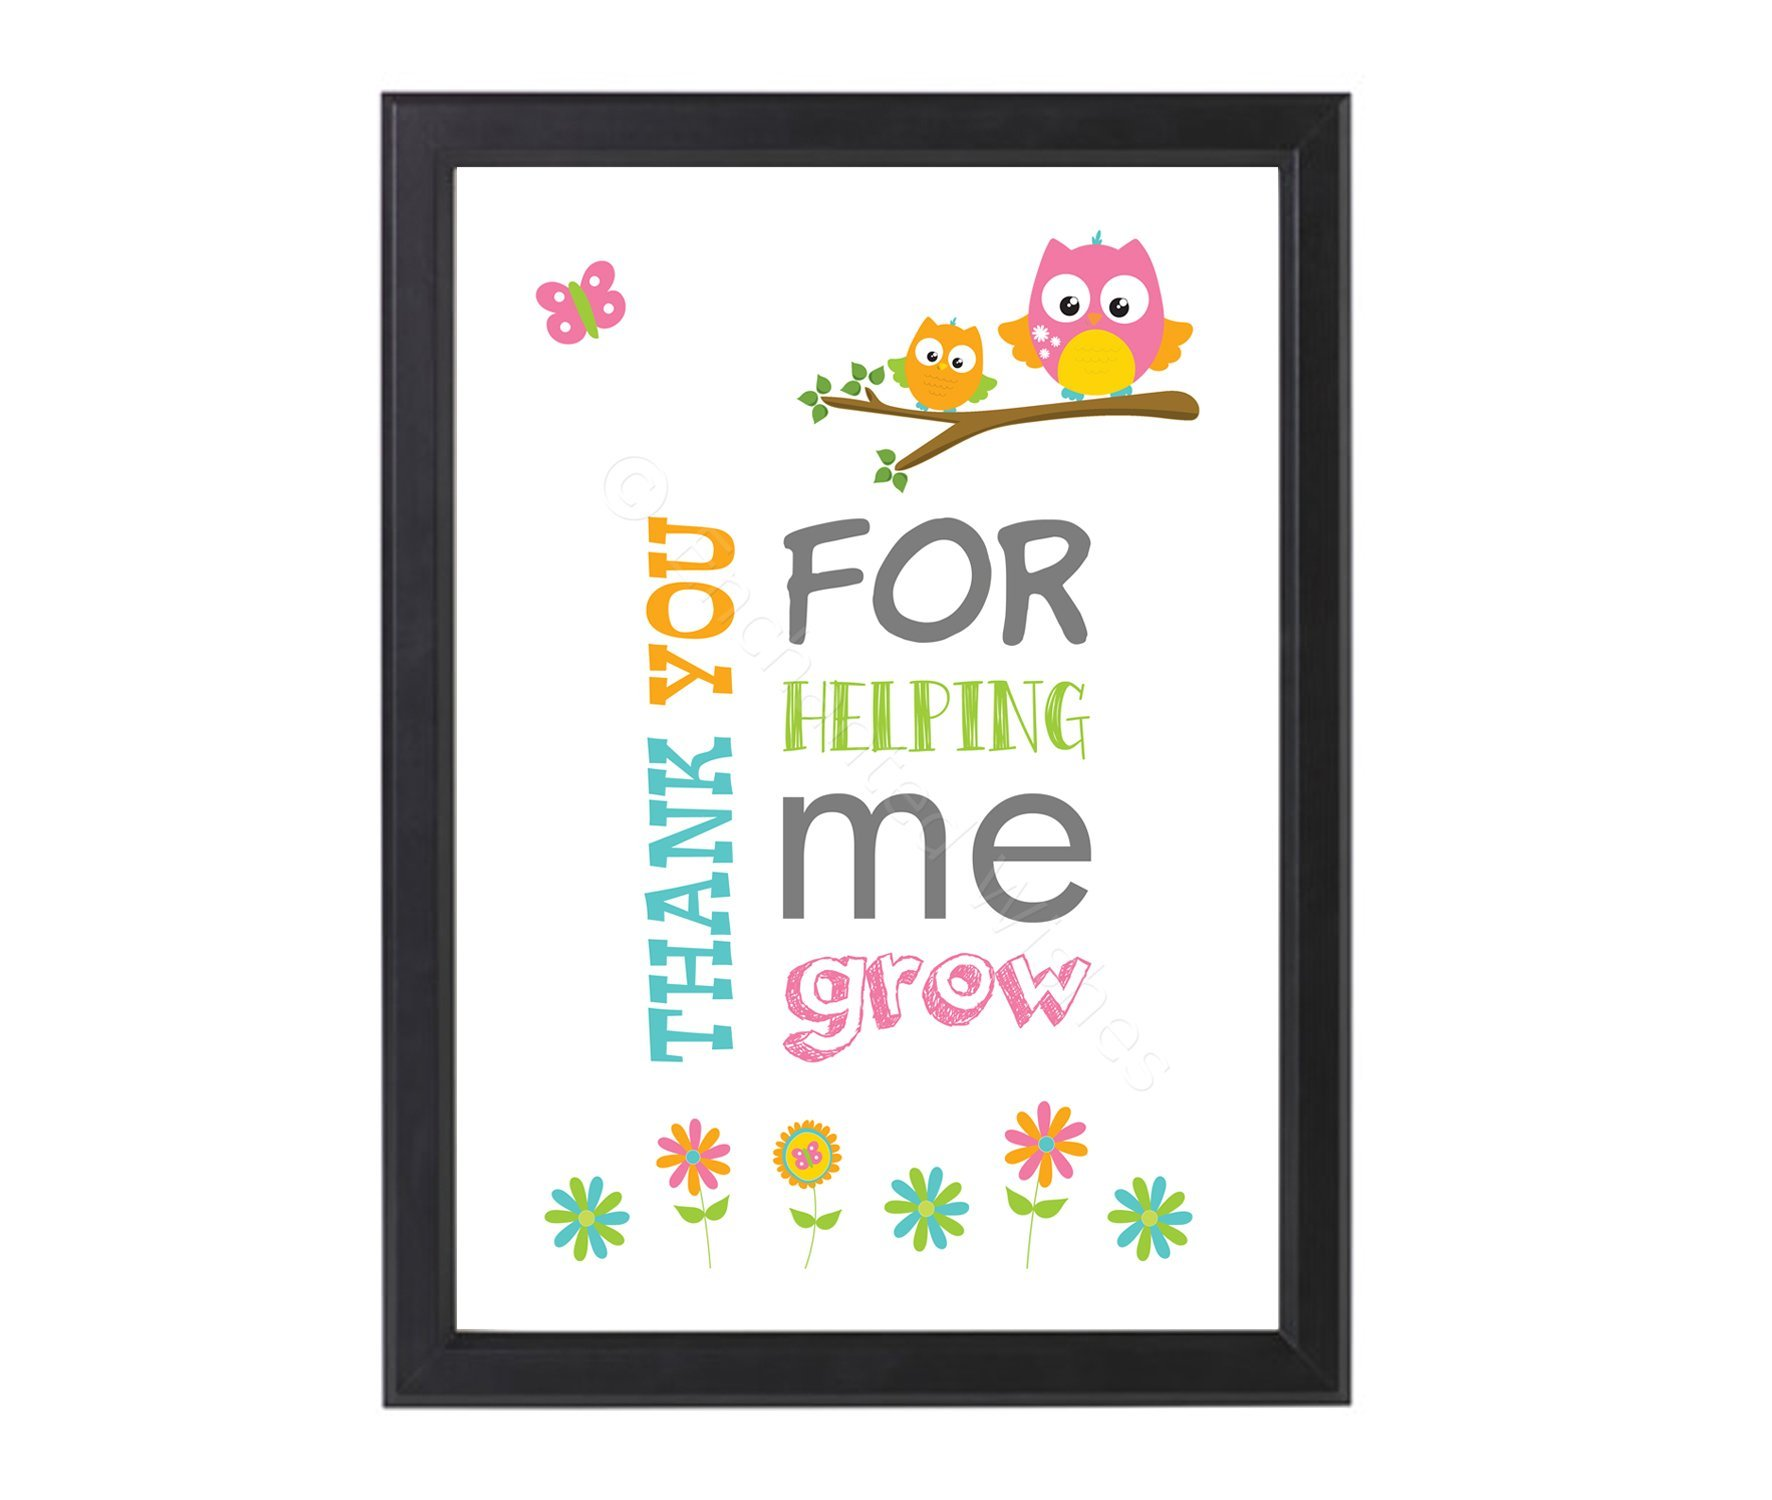 Thanks For Helping Me Grow Quotes: Thank You For Helping Me Grow Print